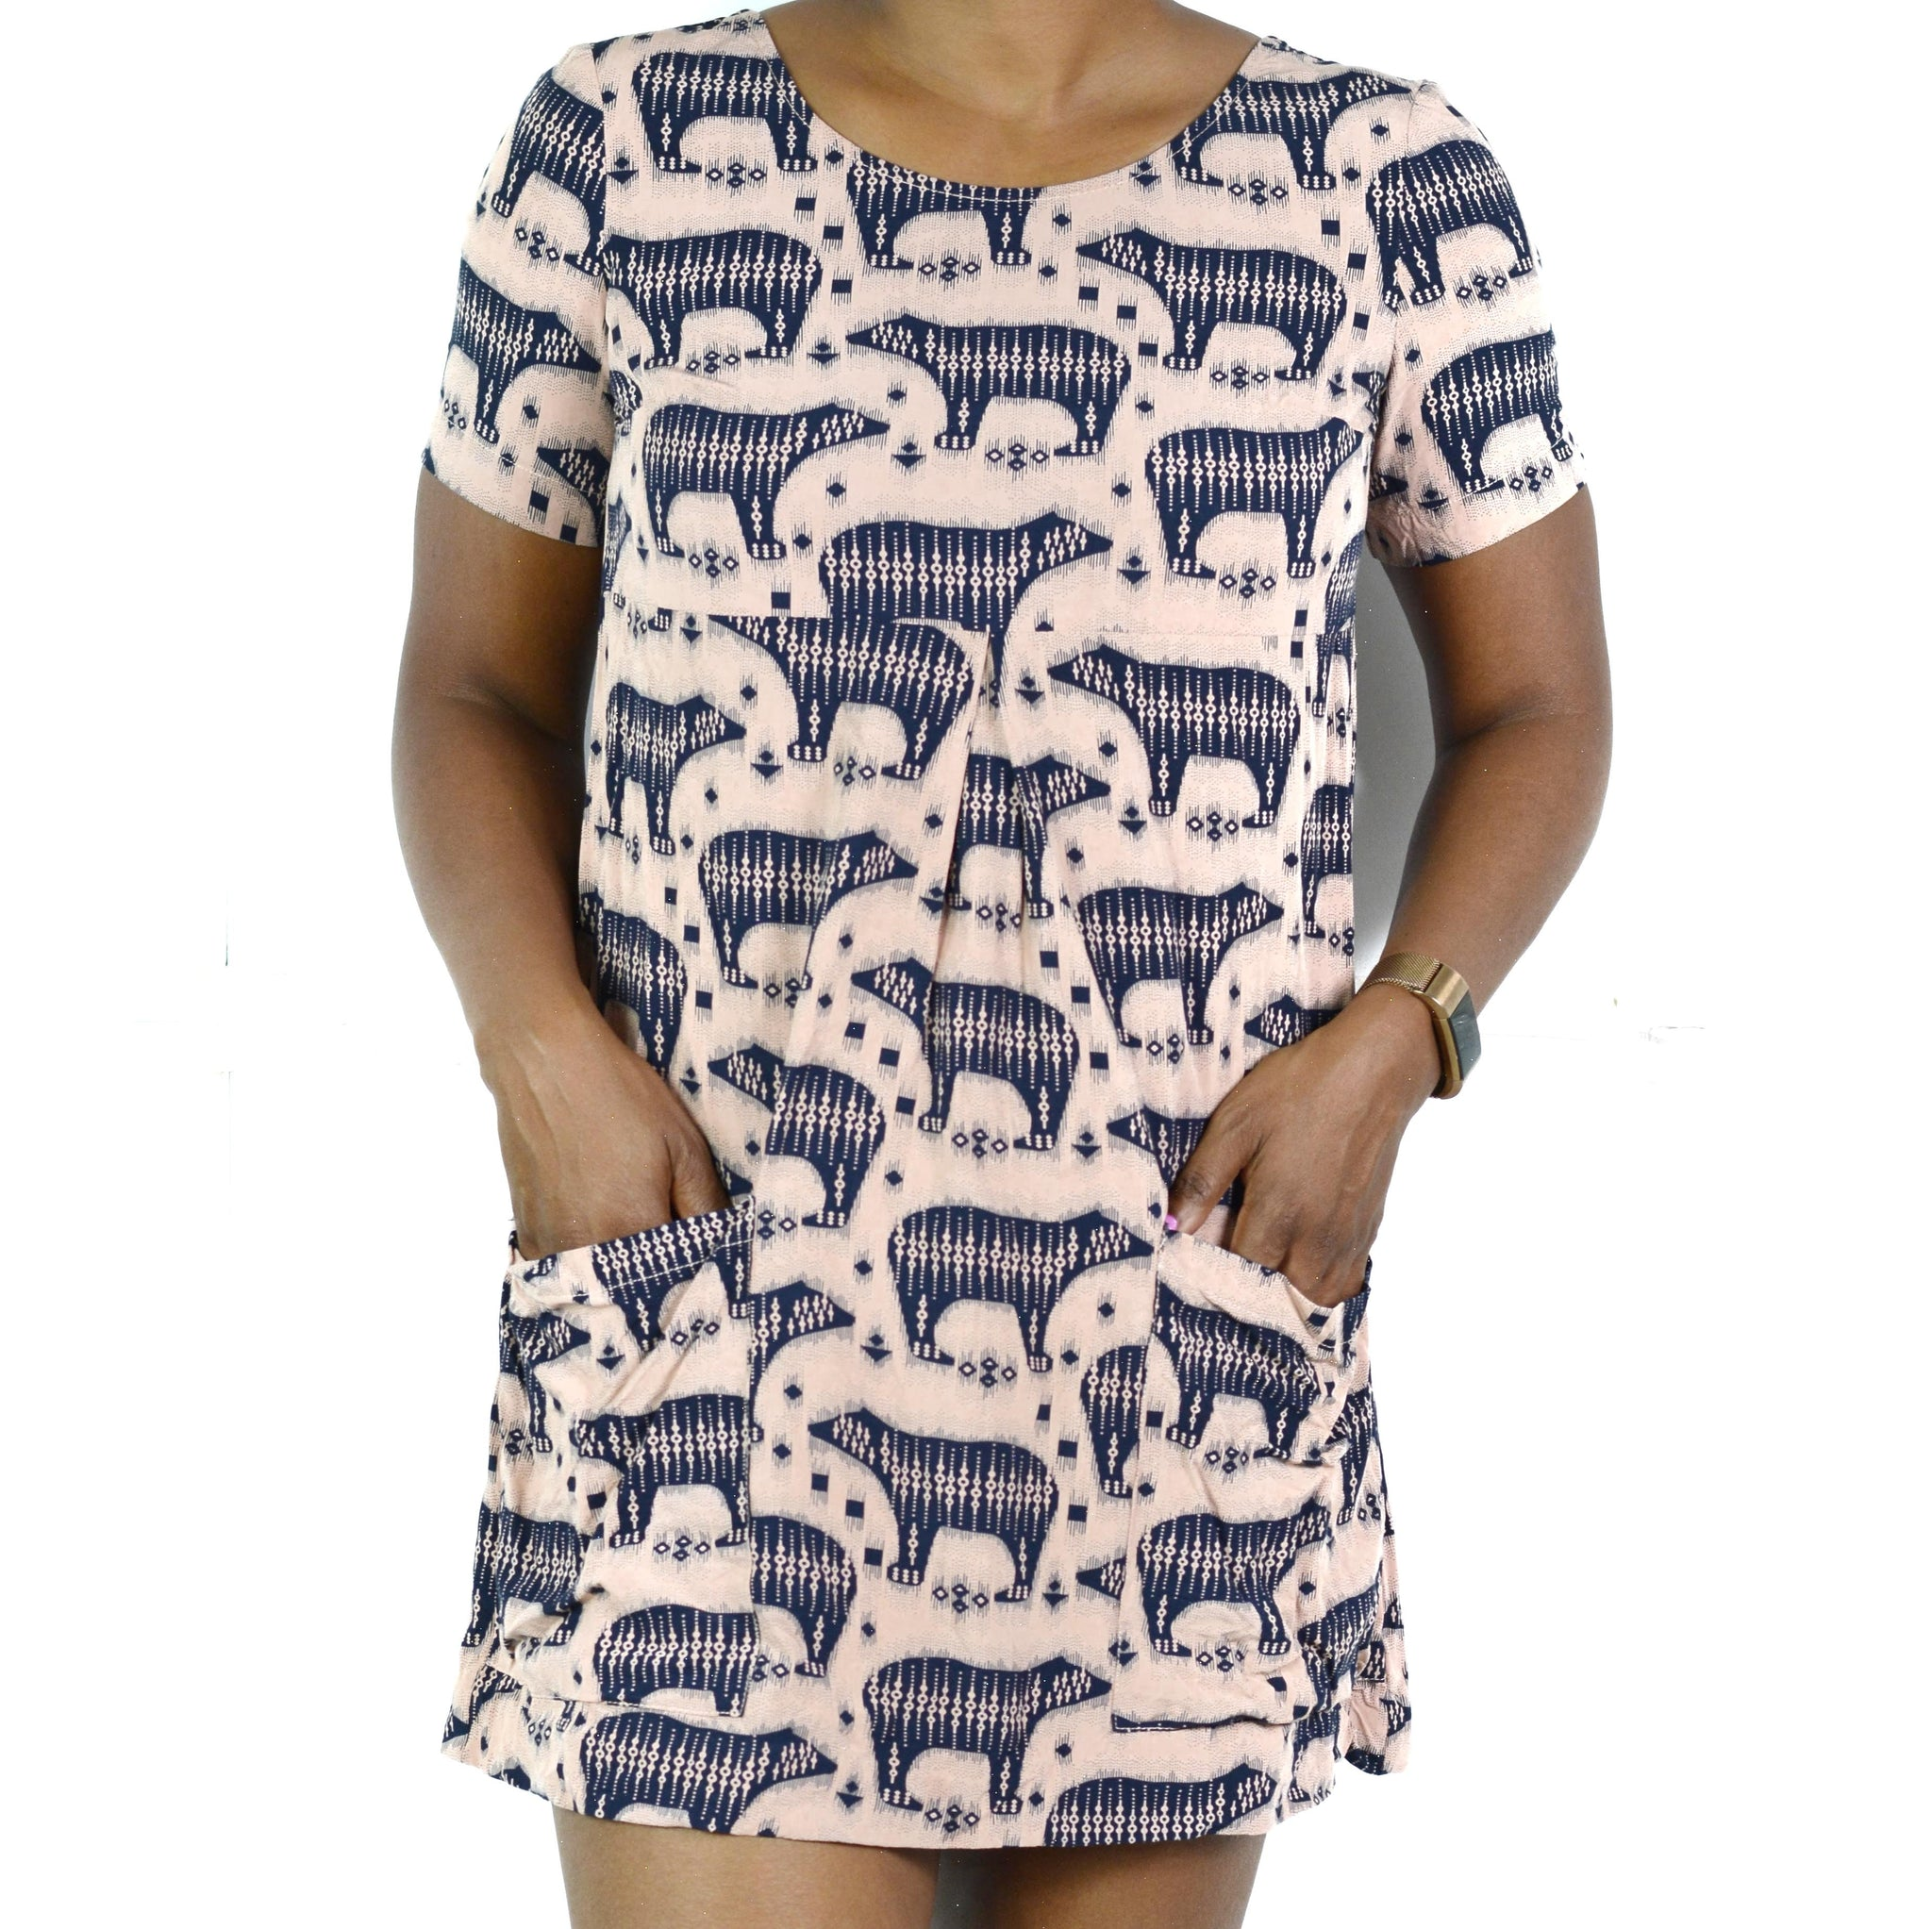 Maeve Zola Dress Polar Bear Anthropologie Size 2P Petite